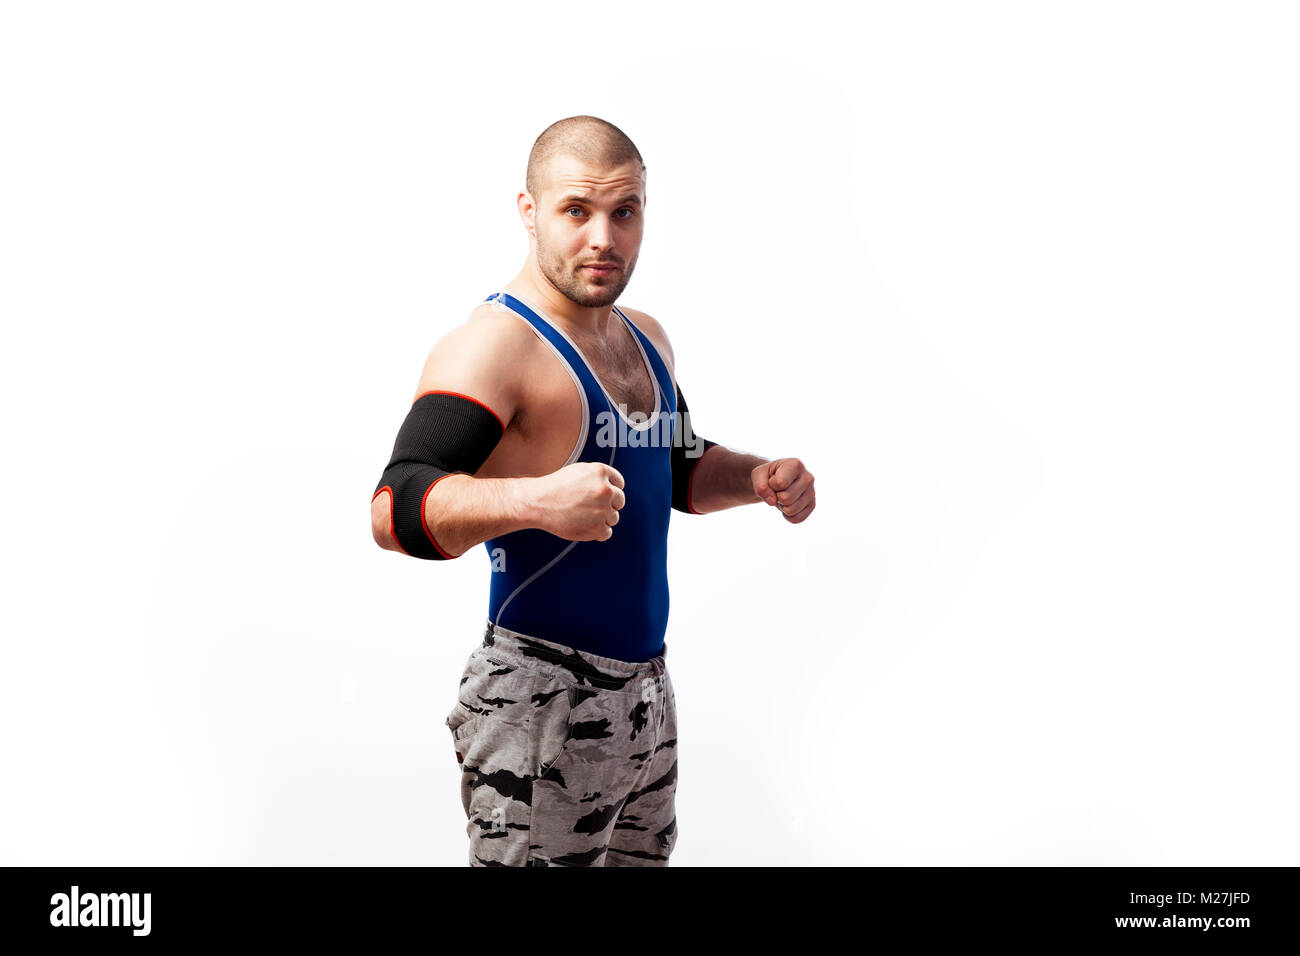 b3c4ce0e0da9d Young athletic man wrestler in a blue tank top